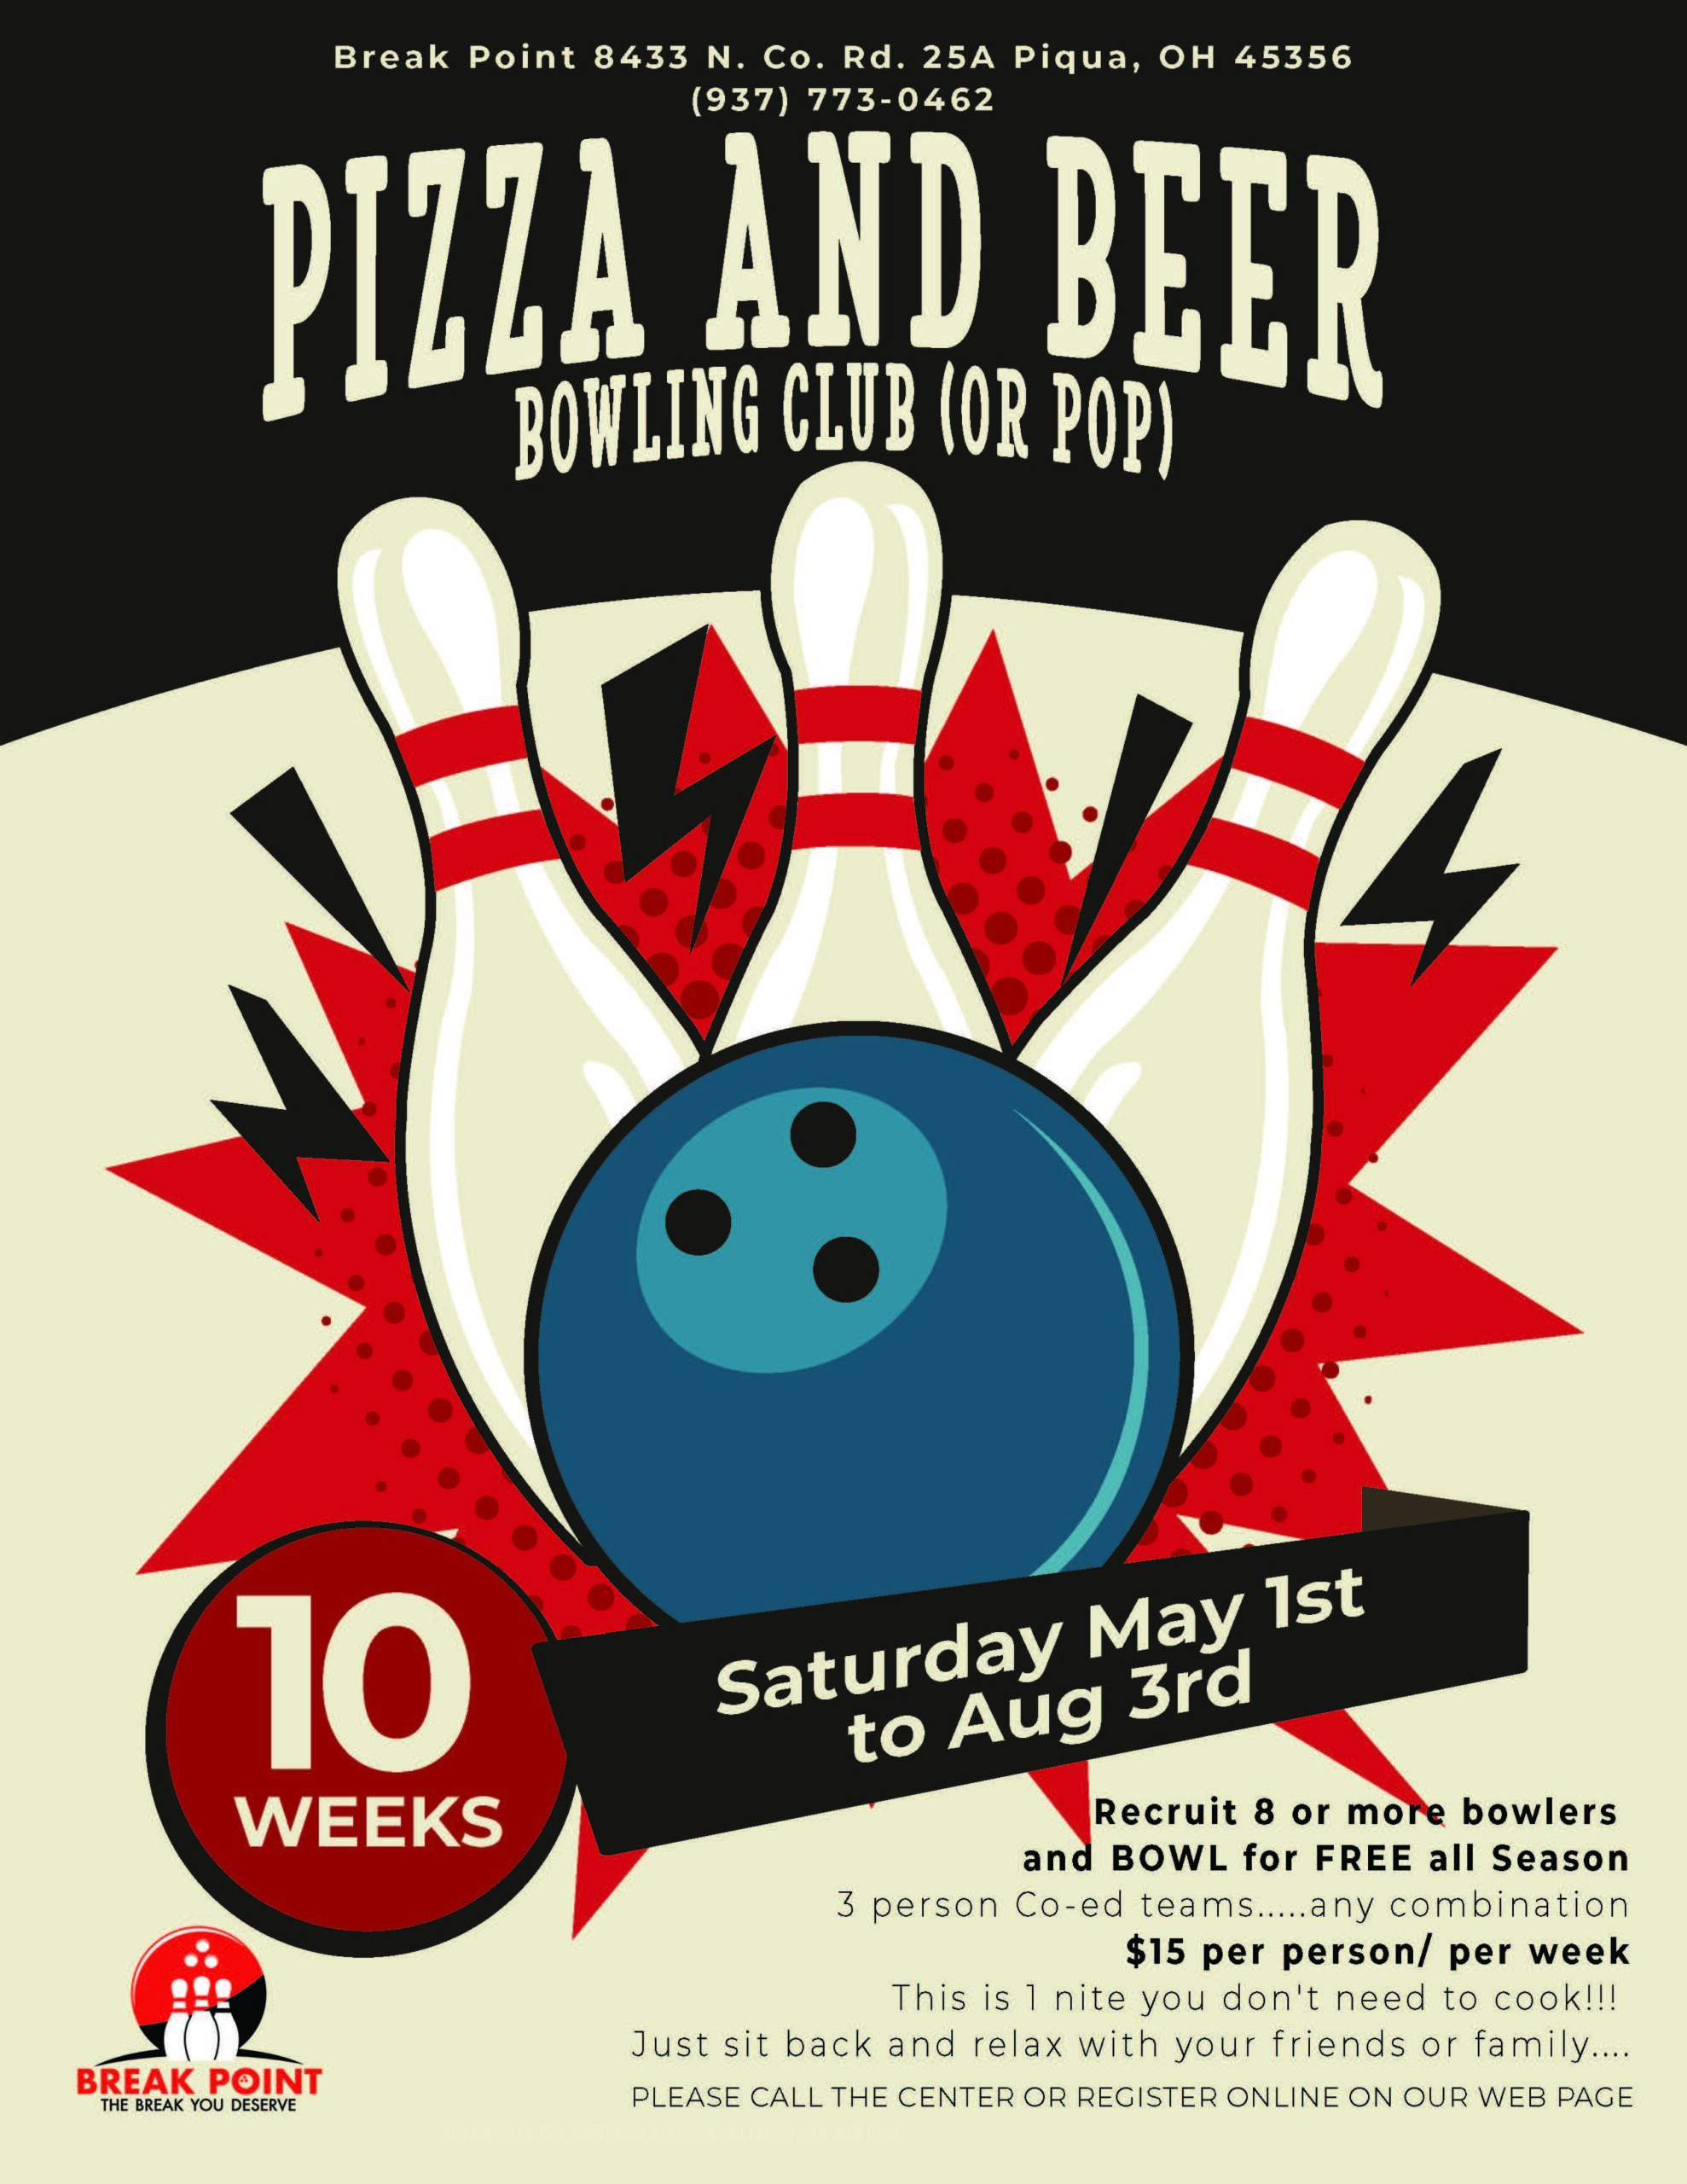 Pizza and Beer Bowling Club (or pop)